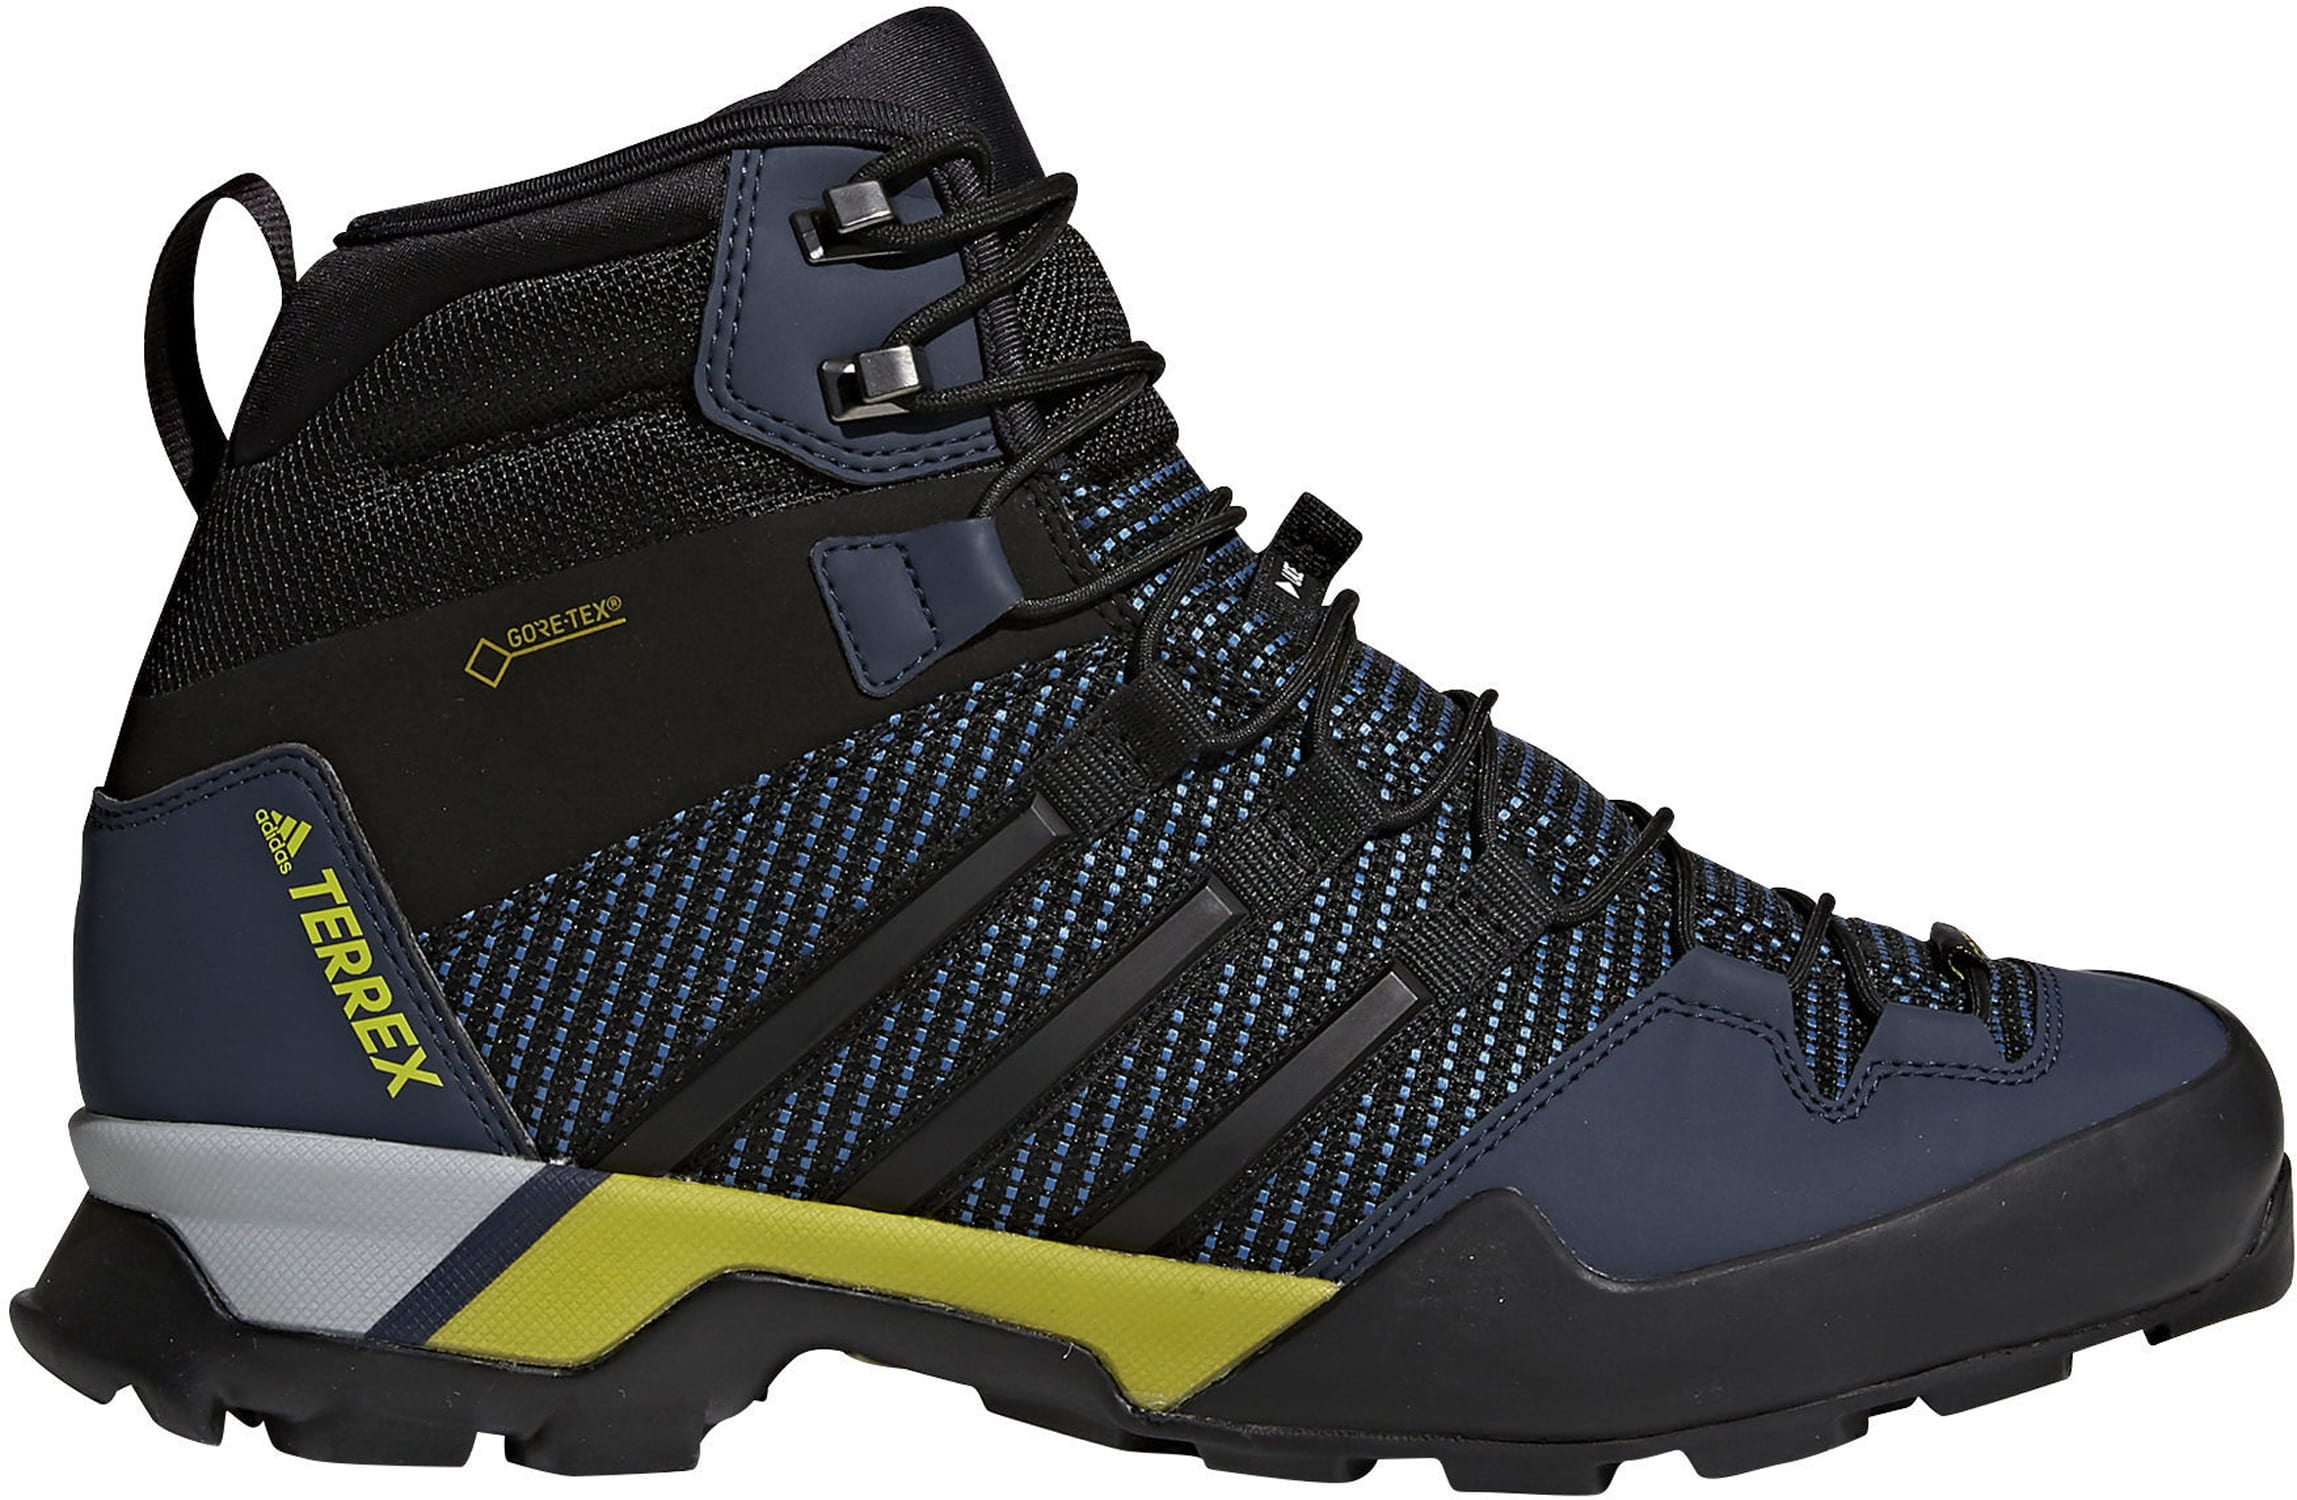 Adidas Terrex Scope High Gtx Hiking Boots 2019